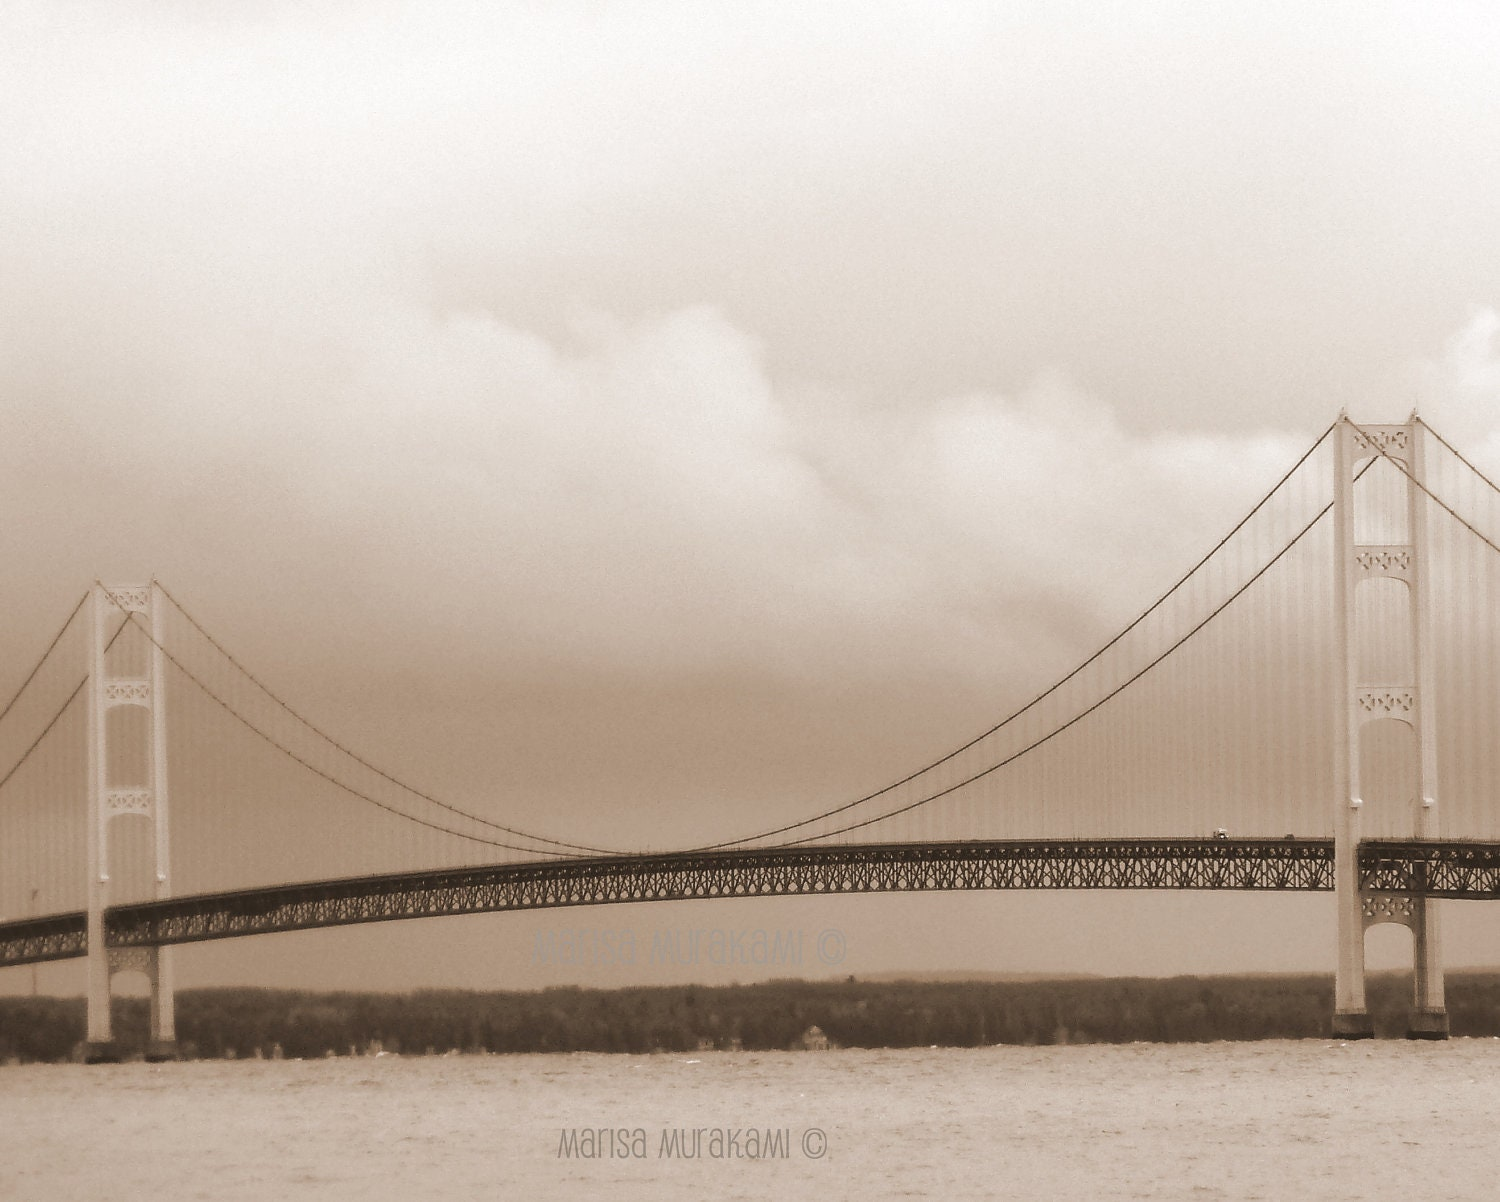 Dream like / Mackinac Bridge / Michigan / Upper Peninsula / Architecture / Landmark - sukoshishop